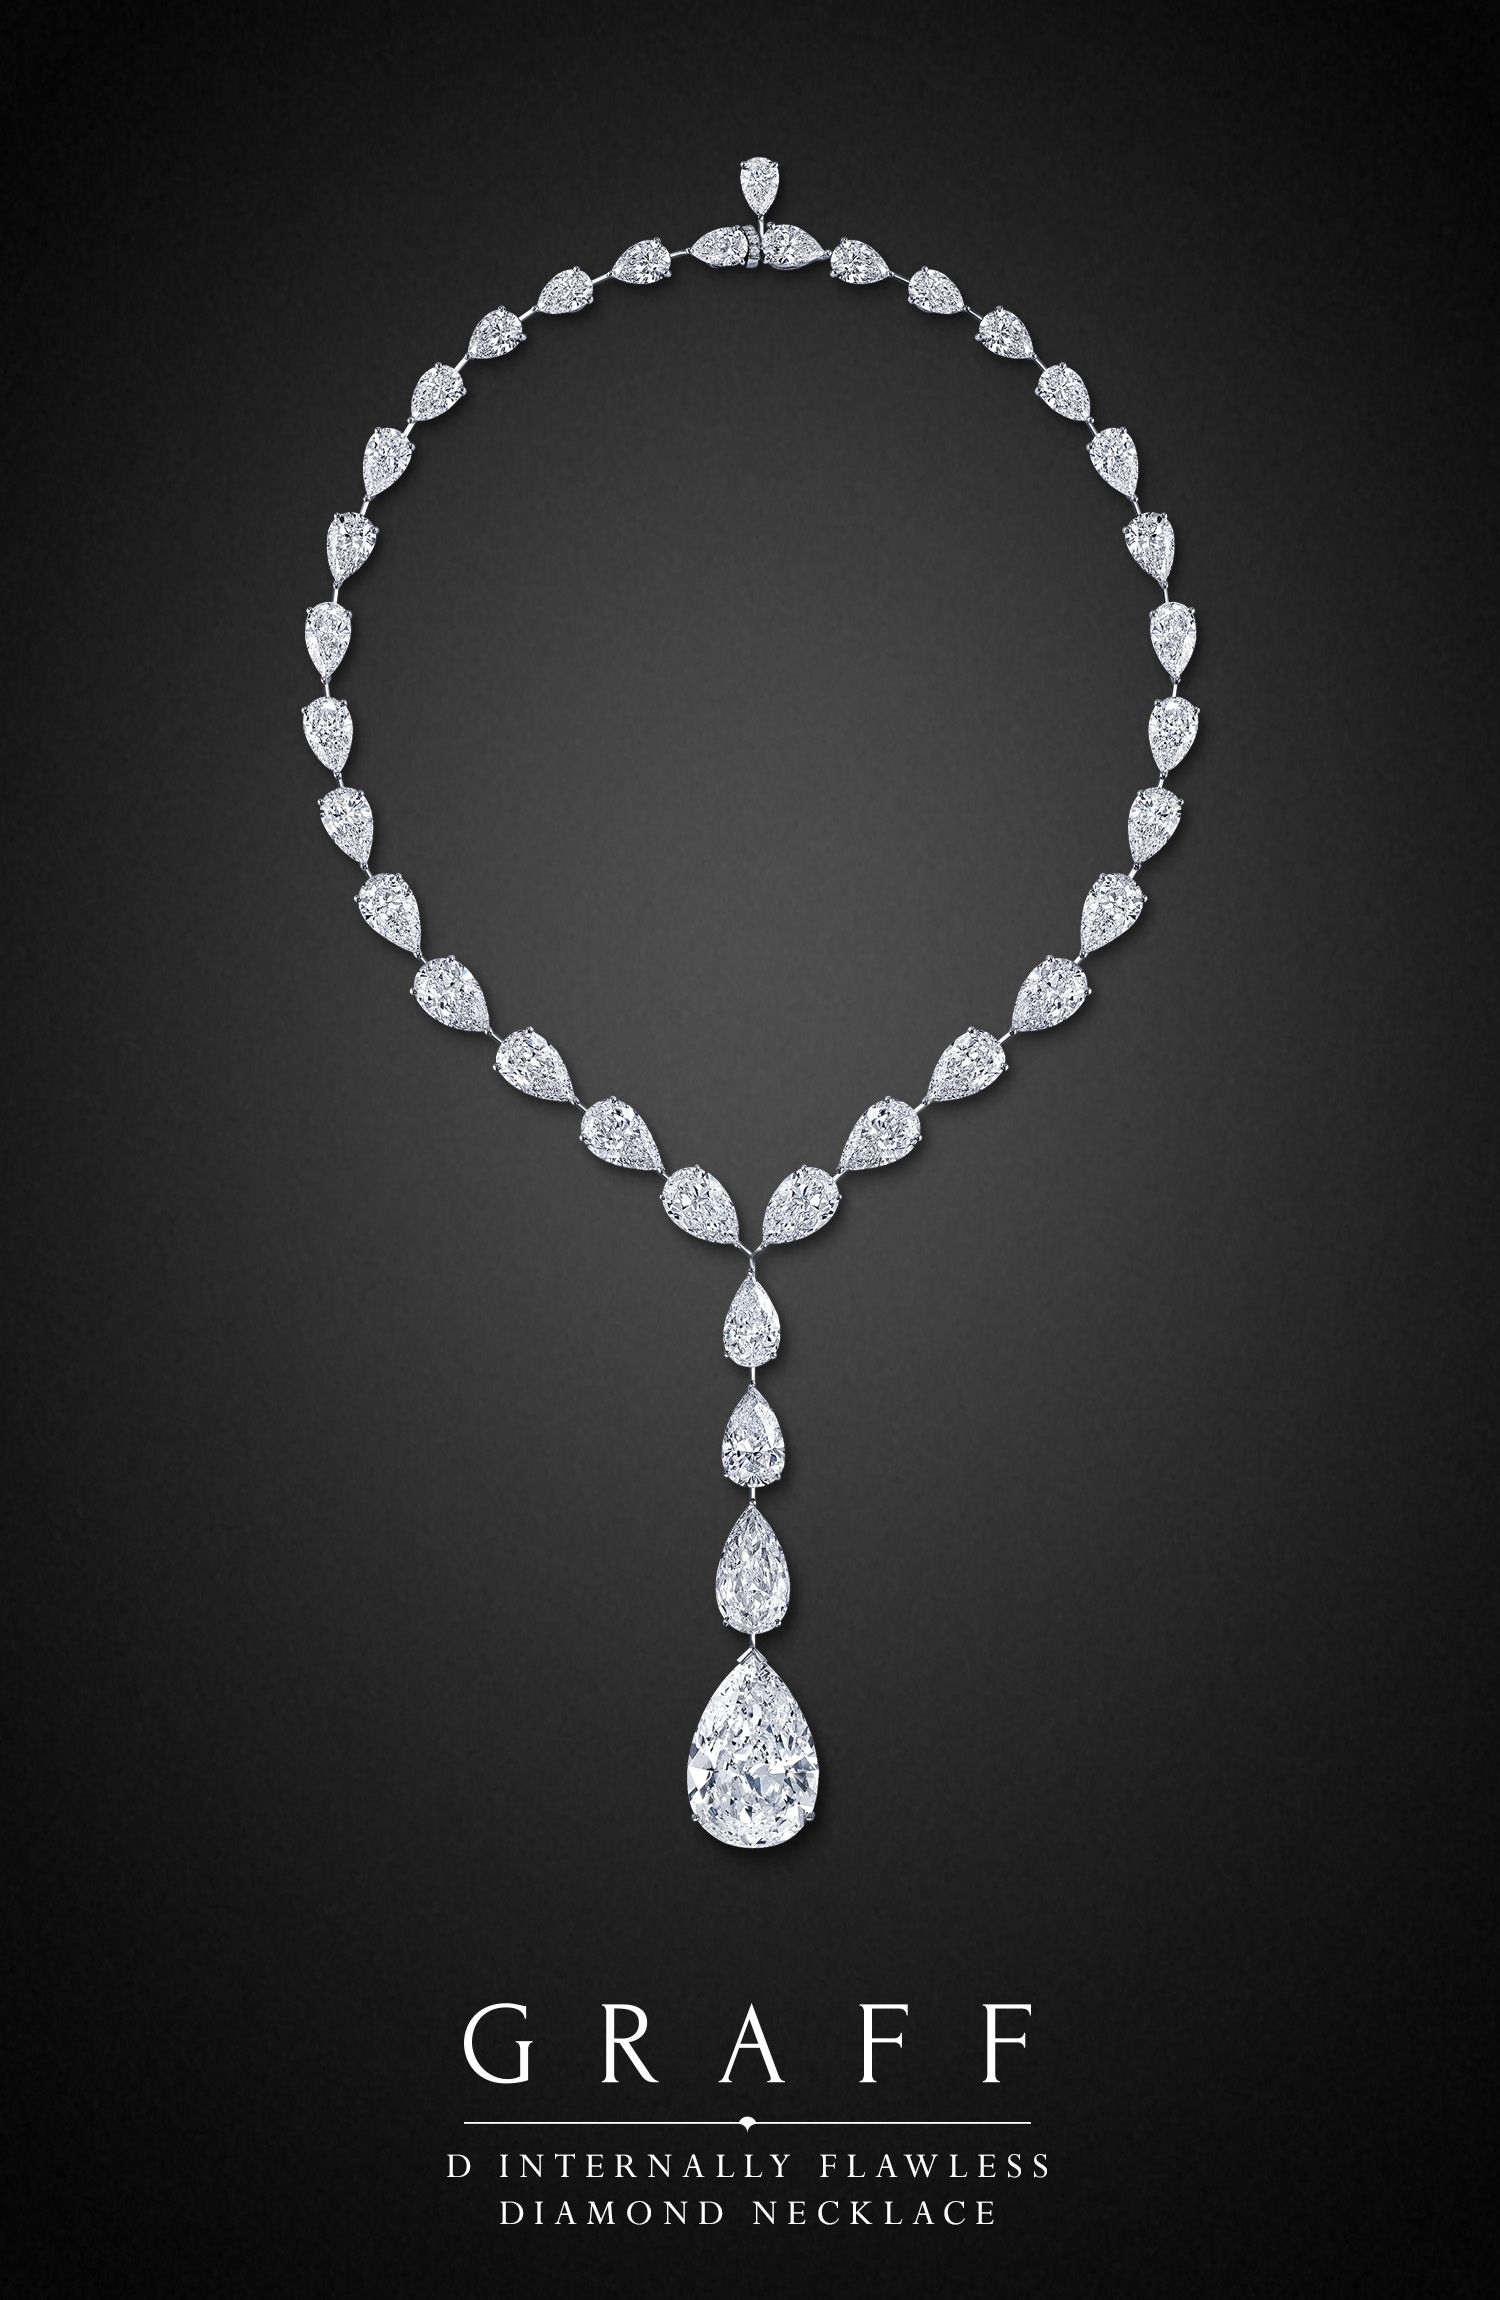 D Internally Flawless Diamond Necklace by Graff Diamonds With